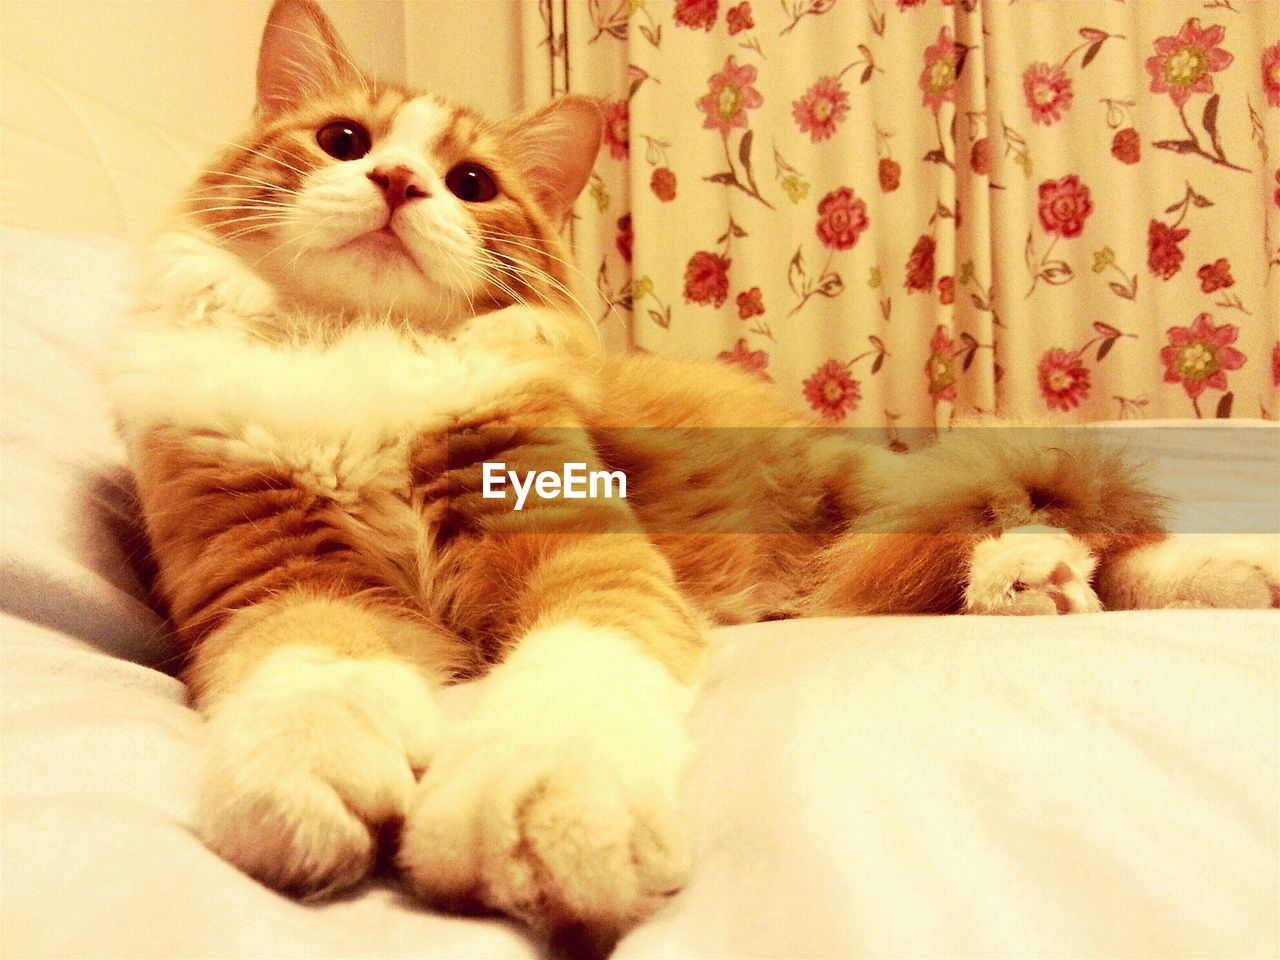 domestic cat, pets, animal themes, domestic animals, one animal, feline, indoors, mammal, no people, whisker, persian cat, looking at camera, close-up, day